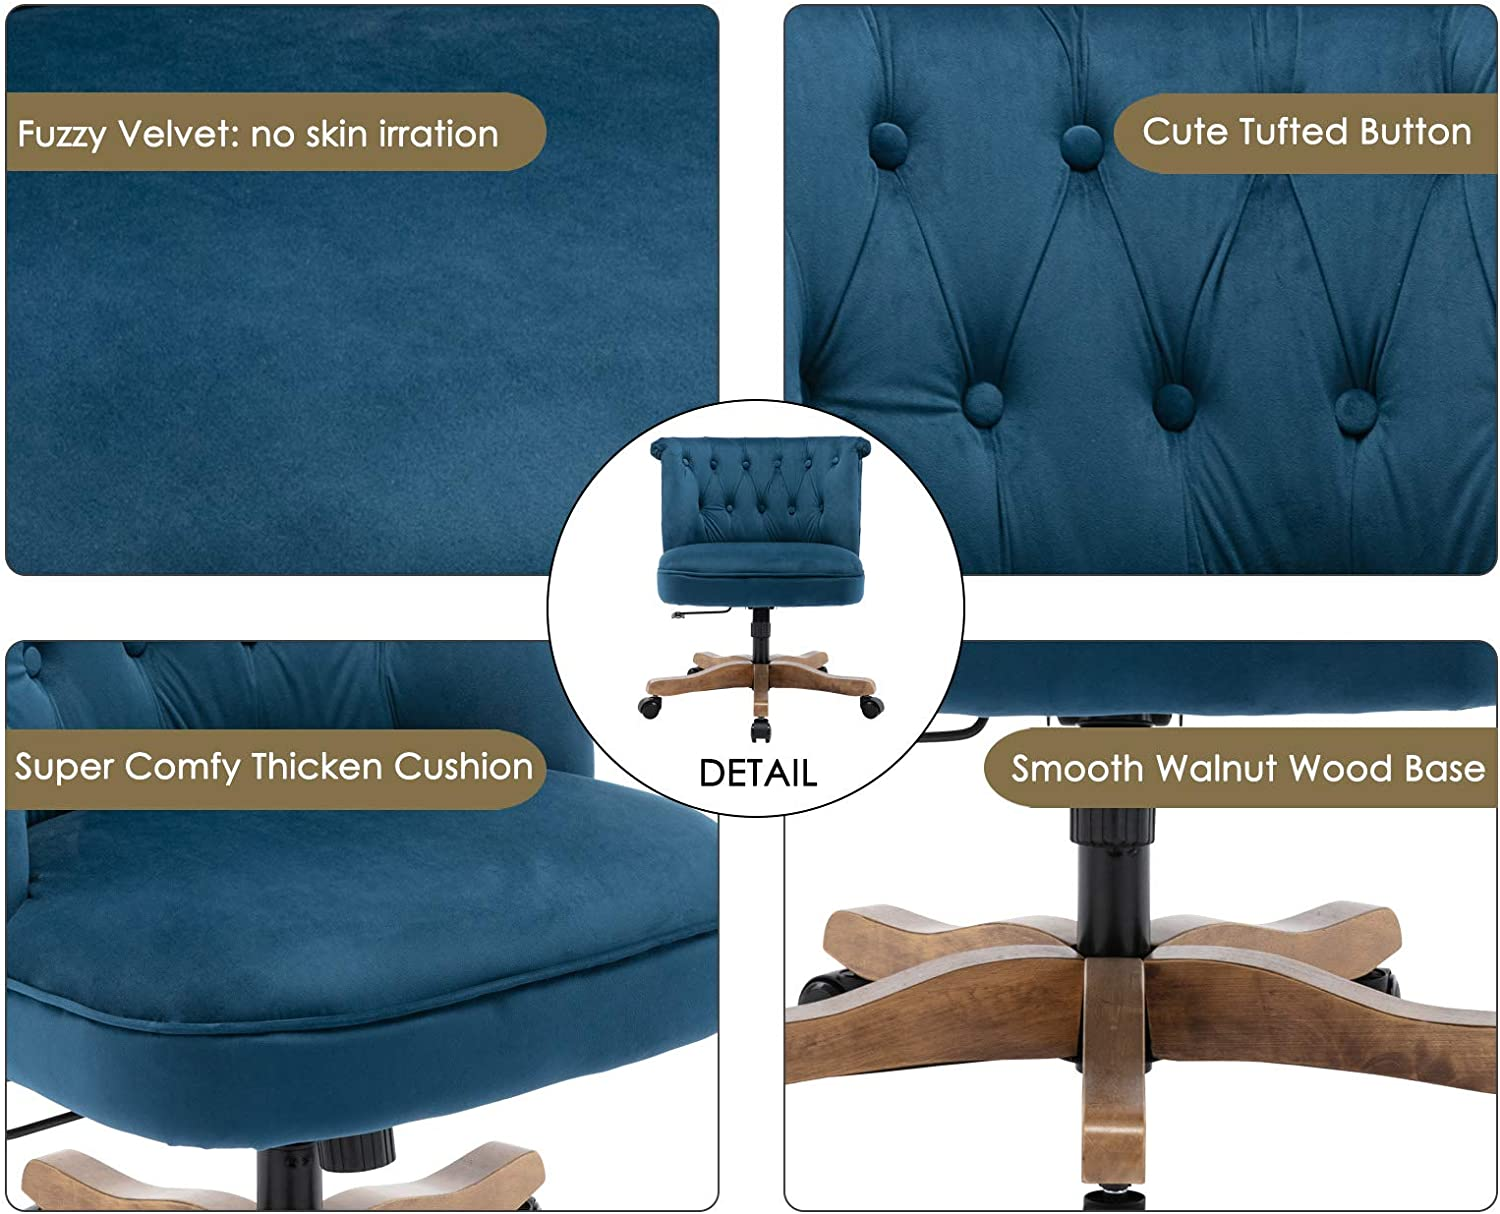 Guyou Upholstered Fabric Desk Chair Tufted Button Armless Office Chair Adjustable Vanity Task Chair with Swivel Wood Base for Living Room//Home//Girls//Boys Beige Linen